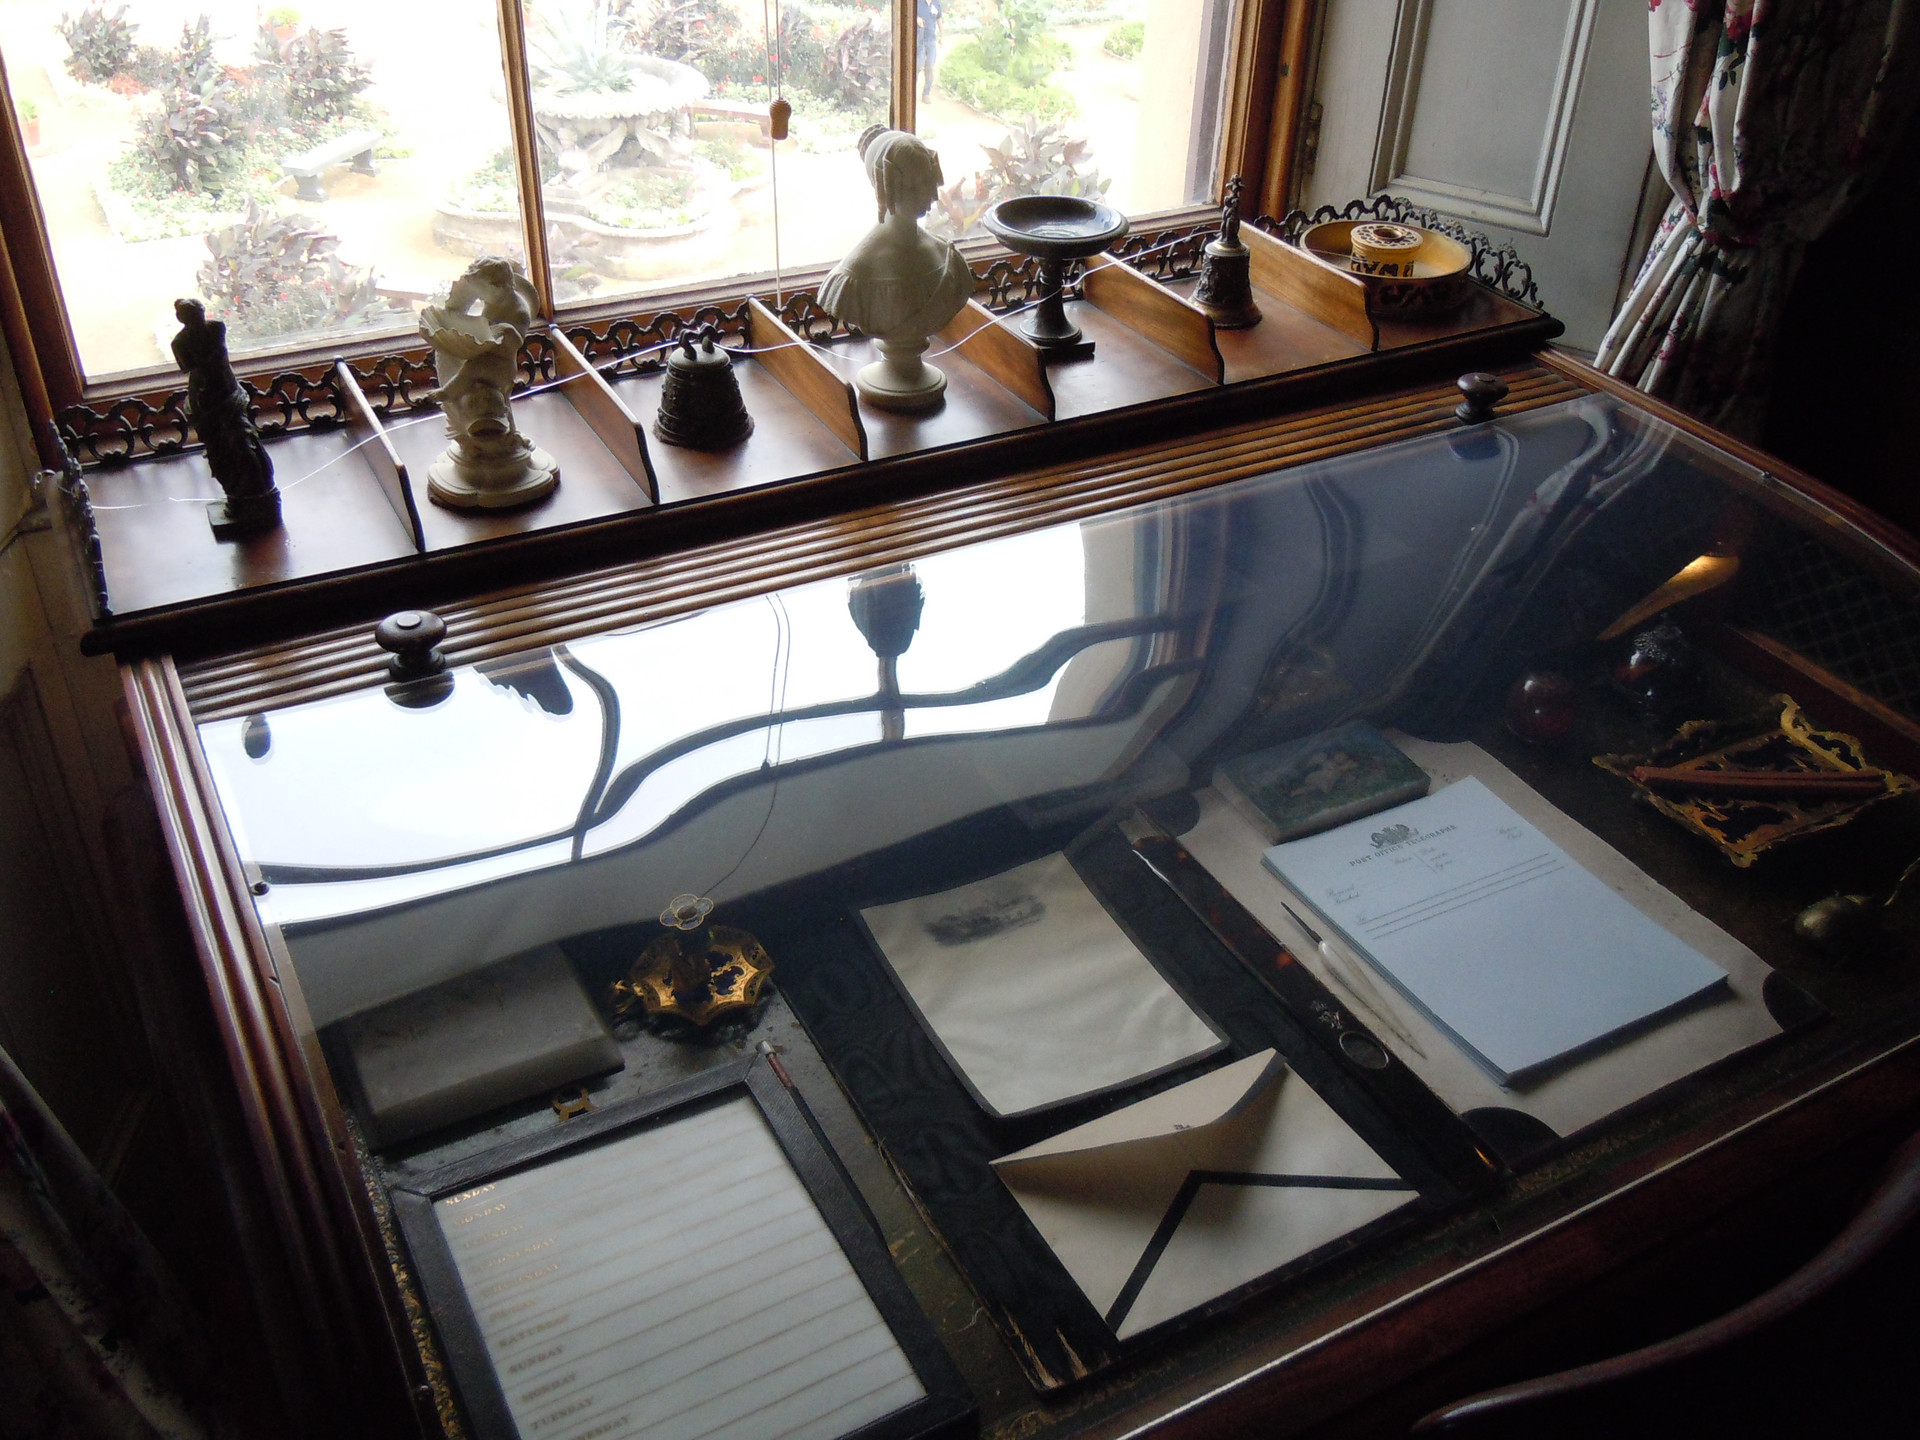 Queen Victoria's writing desk at Osborne House